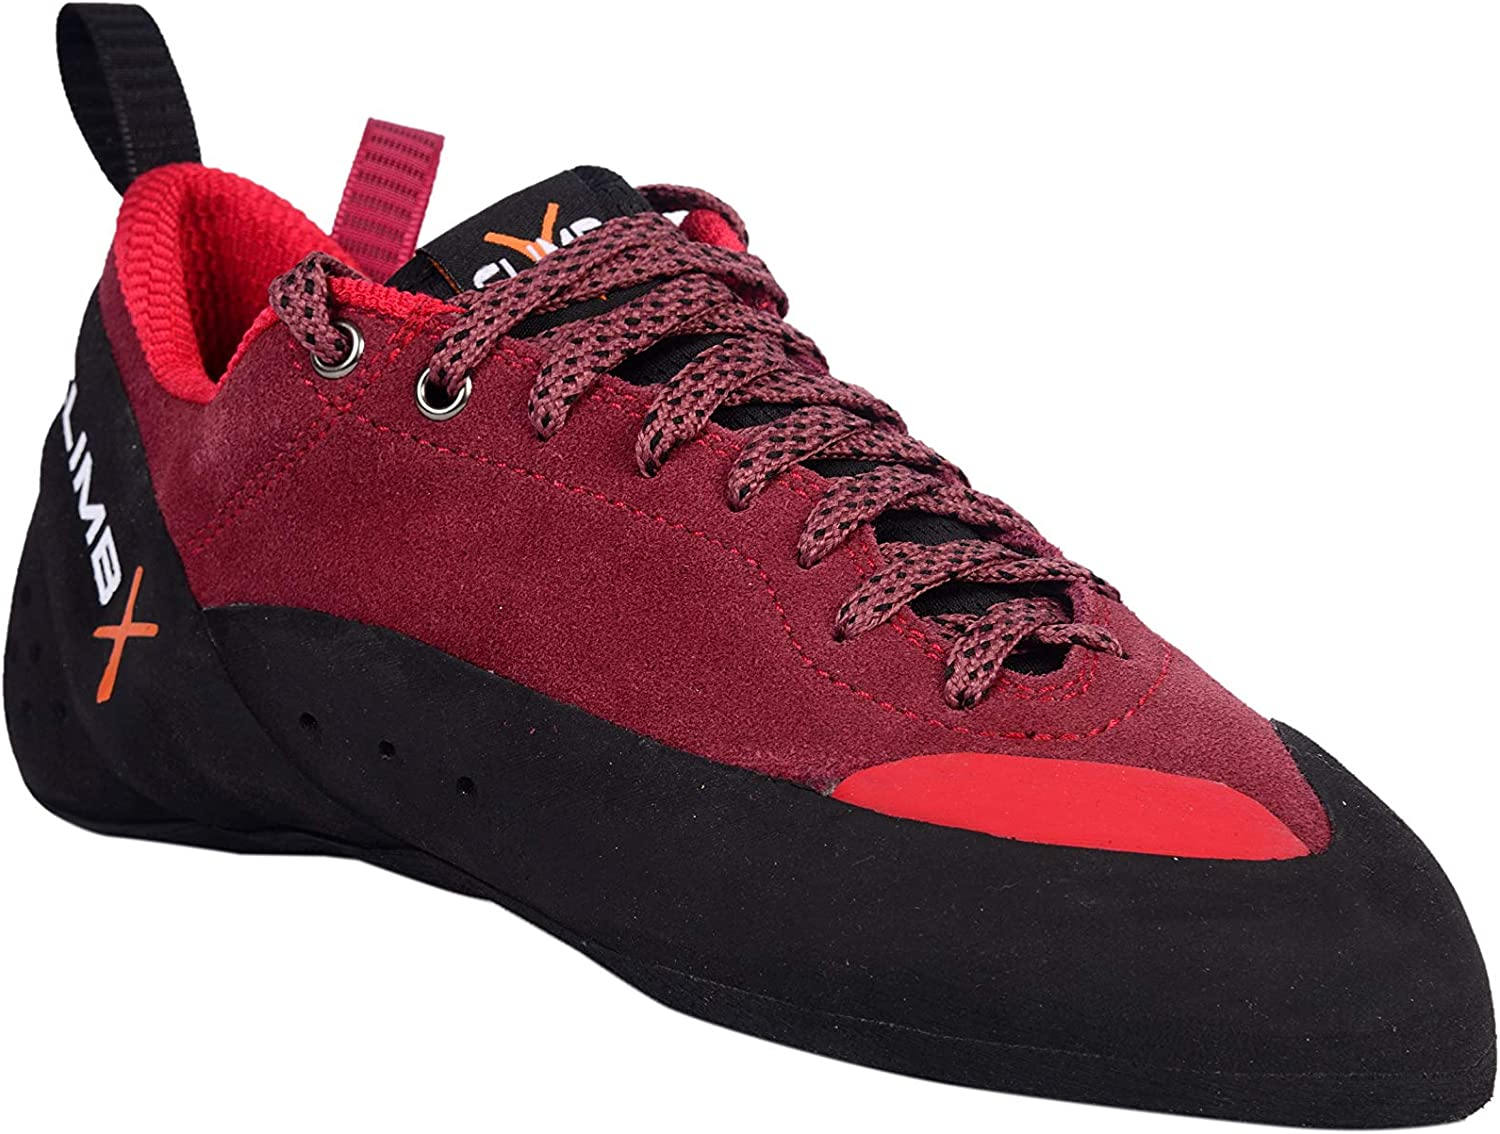 CLIMBX Crush Lace -Red- Rock Climbing/Bouldering Shoe 2019